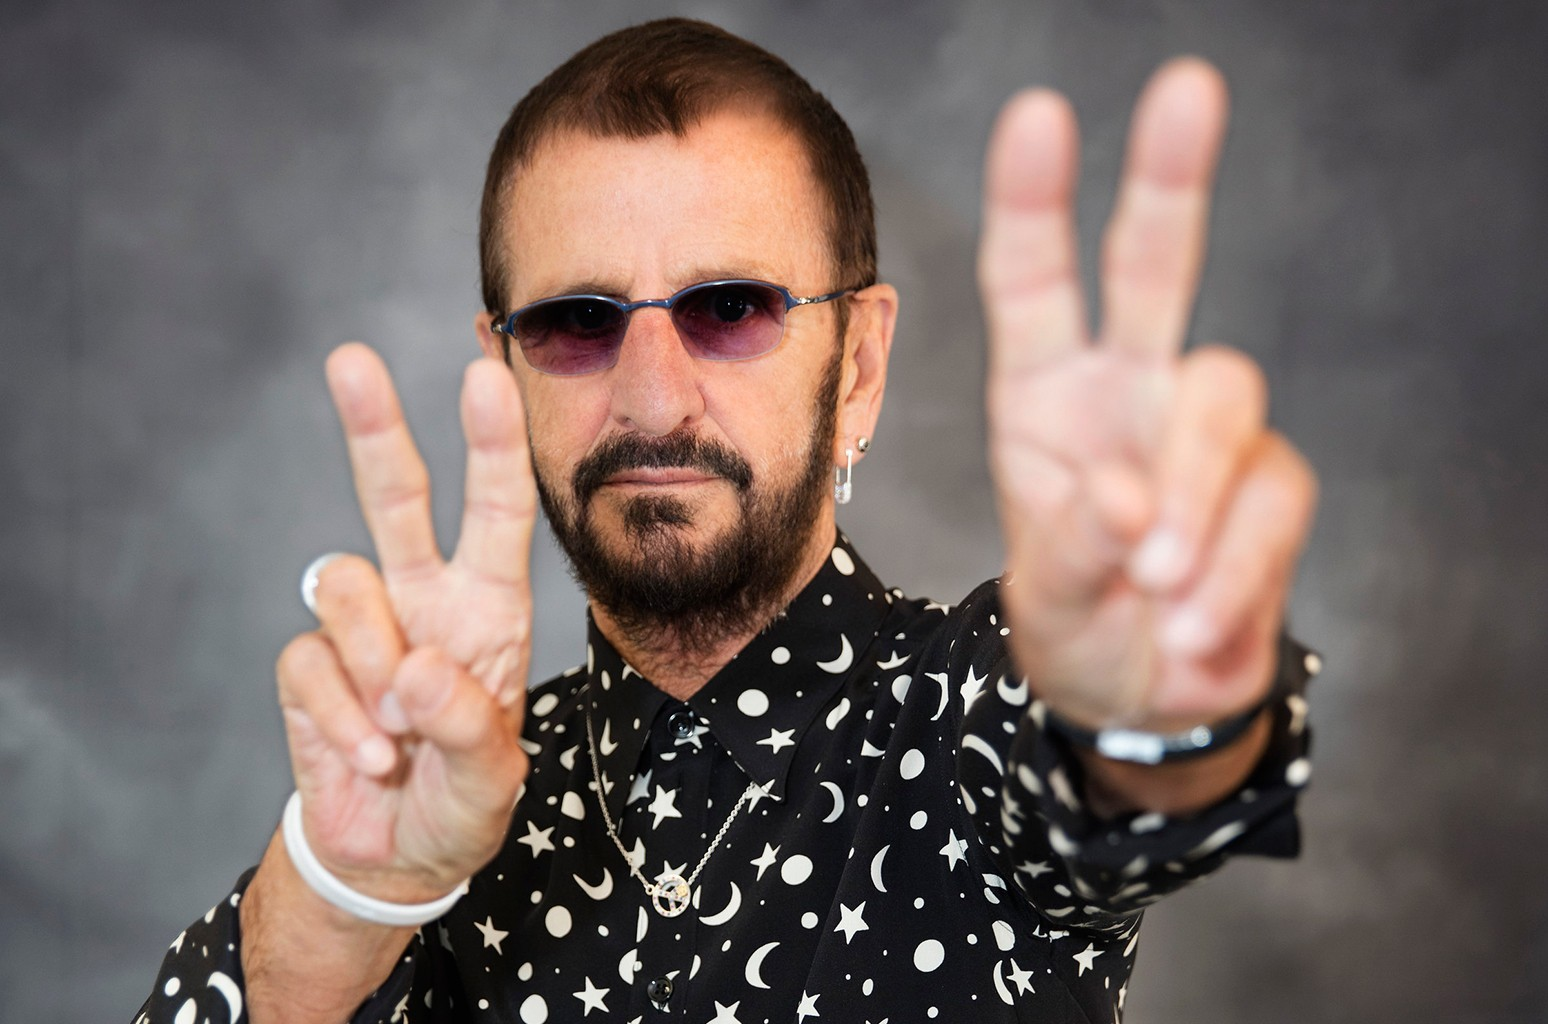 Ringo Starr Turns 80 Paul Mccartney Jason Isbell More Birthday Wishes Billboard